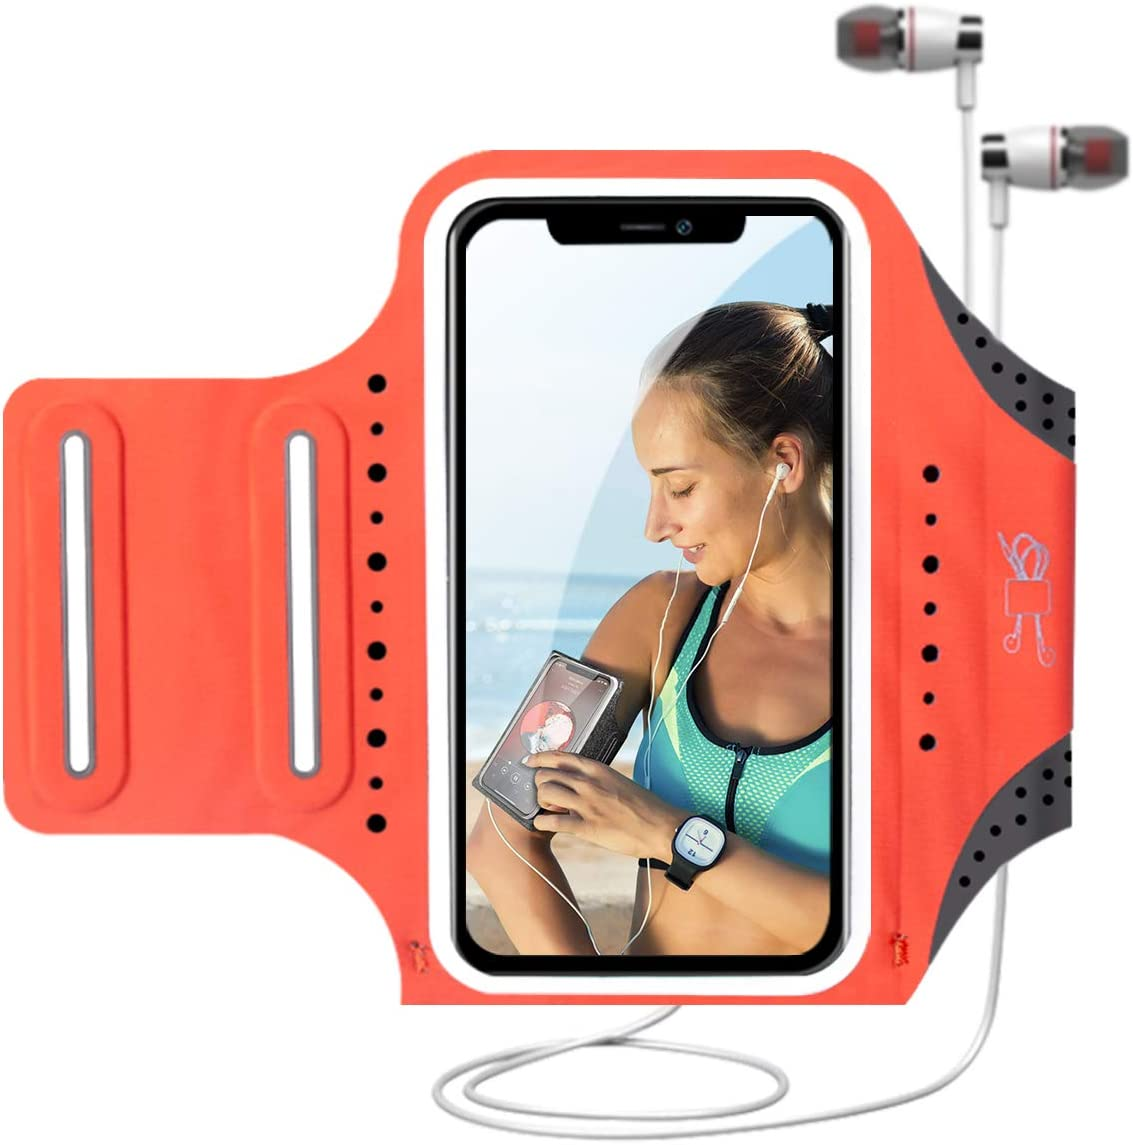 MILPROX Cell Phone Armband, Universal Waterproof Phone Arm Holder with Adjustable Elastic Band & Card Holder Fits for All Phones up to 6.5 Inches (iPhone, Samsung, LG, Pixel) for Gym, Hiking - Coral